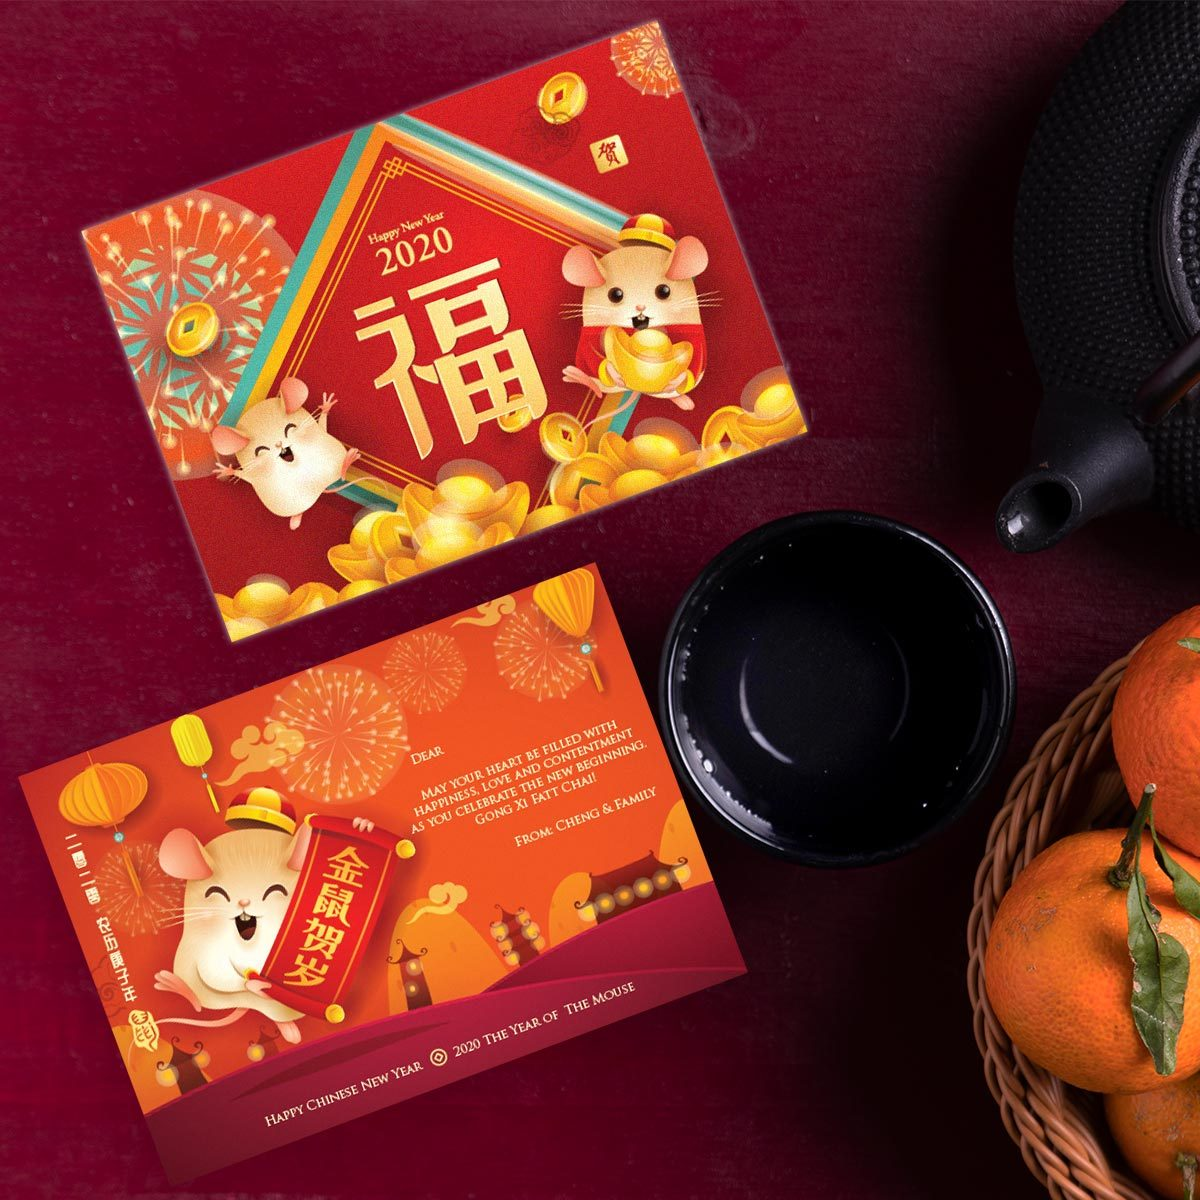 2020 Cute Mouse - Personalize Modern Chinese New Year Greeting Cards